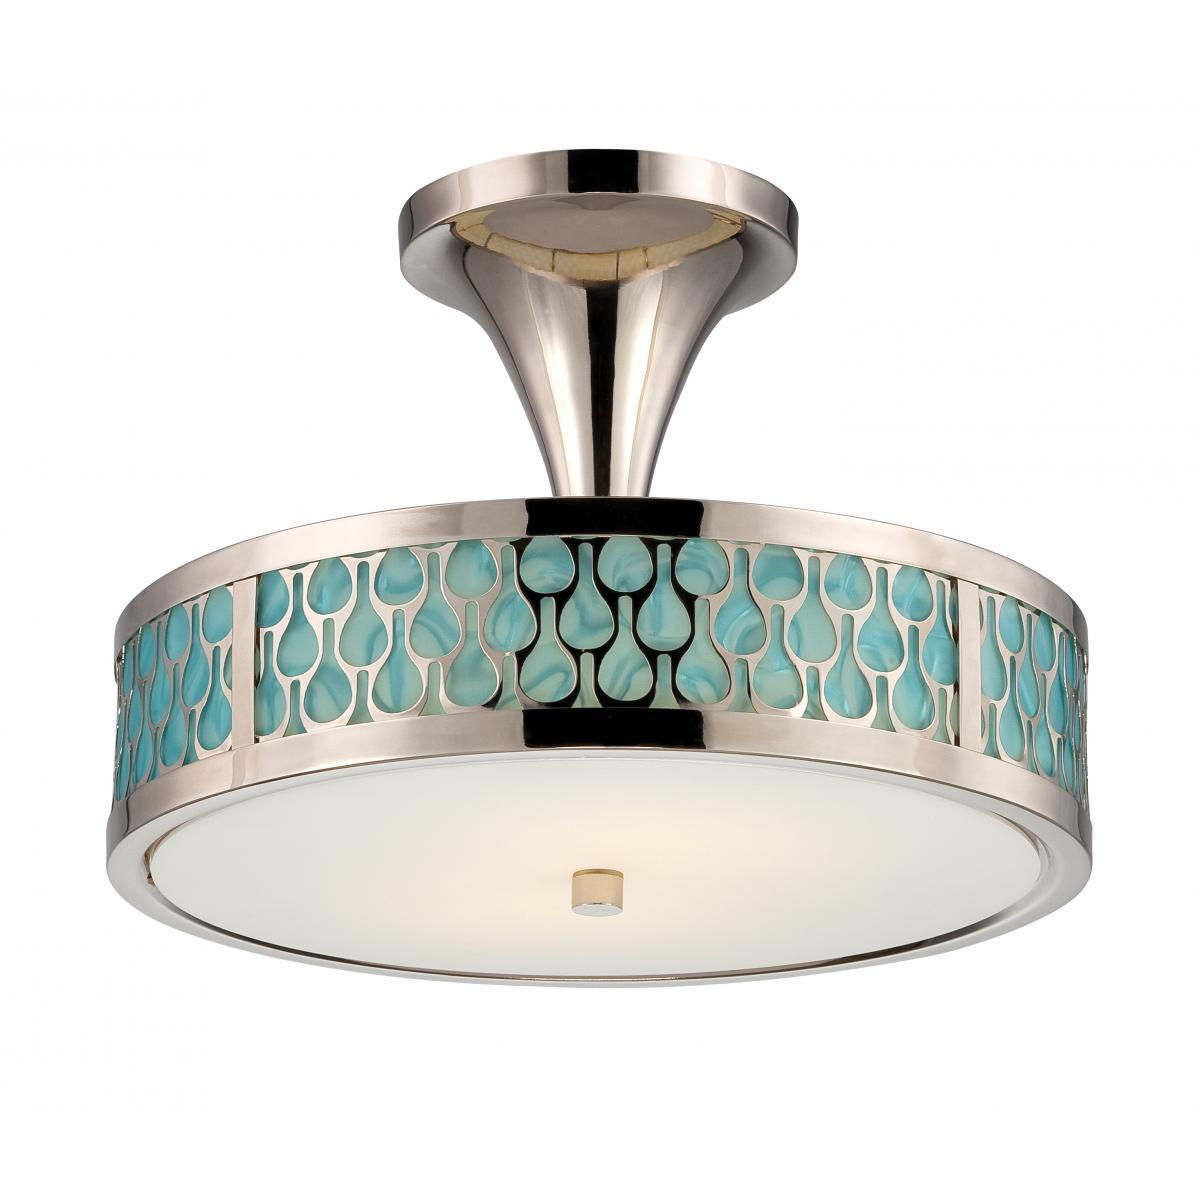 Raindrop 2 Module Semi-Flush Dome with White Glass and Removable Aquamarine Insert Ceiling Nuvo Lighting